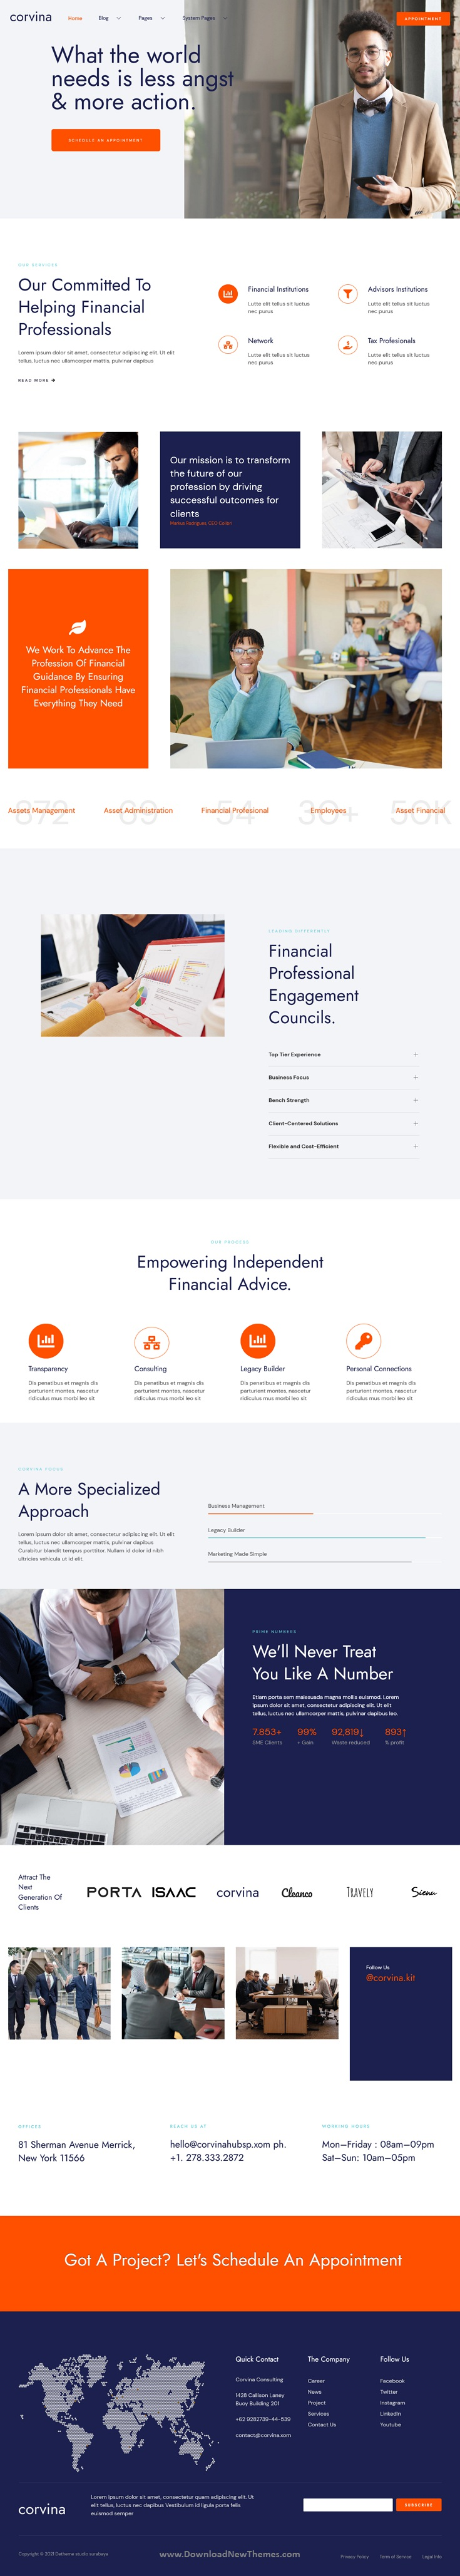 Corvina - Business Consulting HubSpot Theme